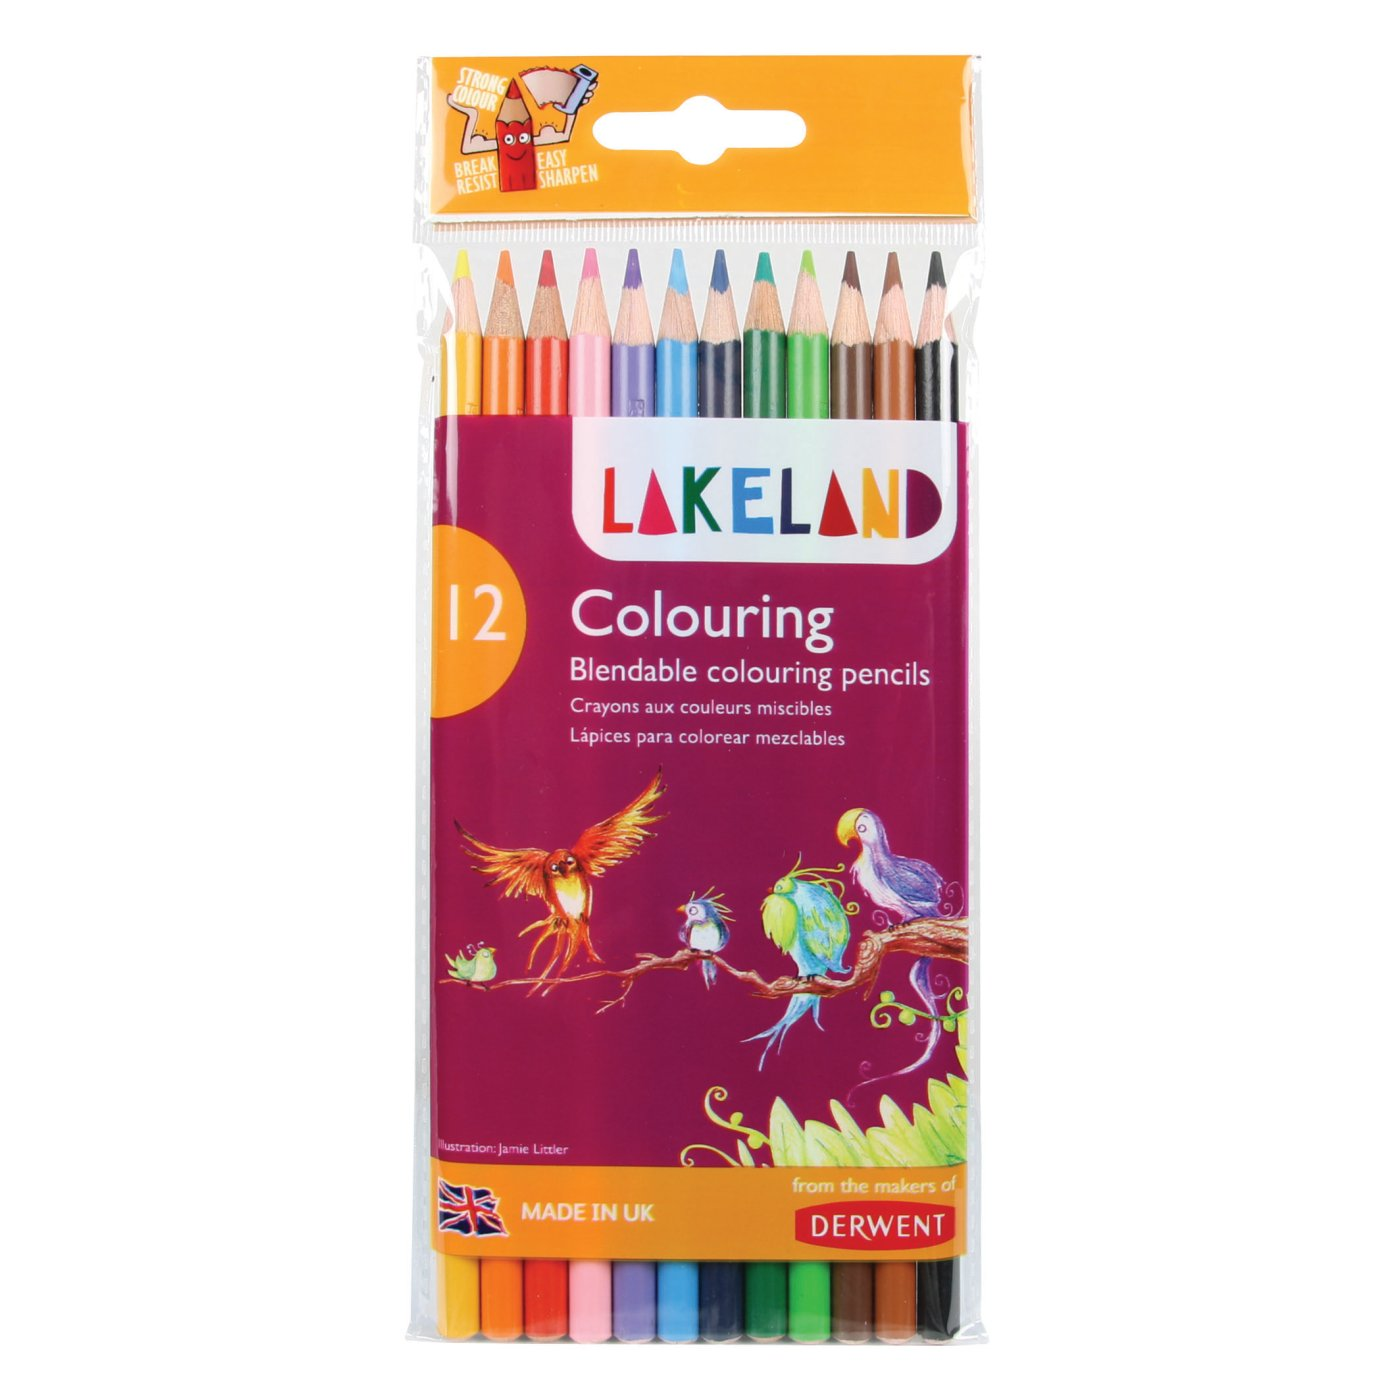 Farveblyanter Derwent Lakeland Colouring, 12stk. 33356